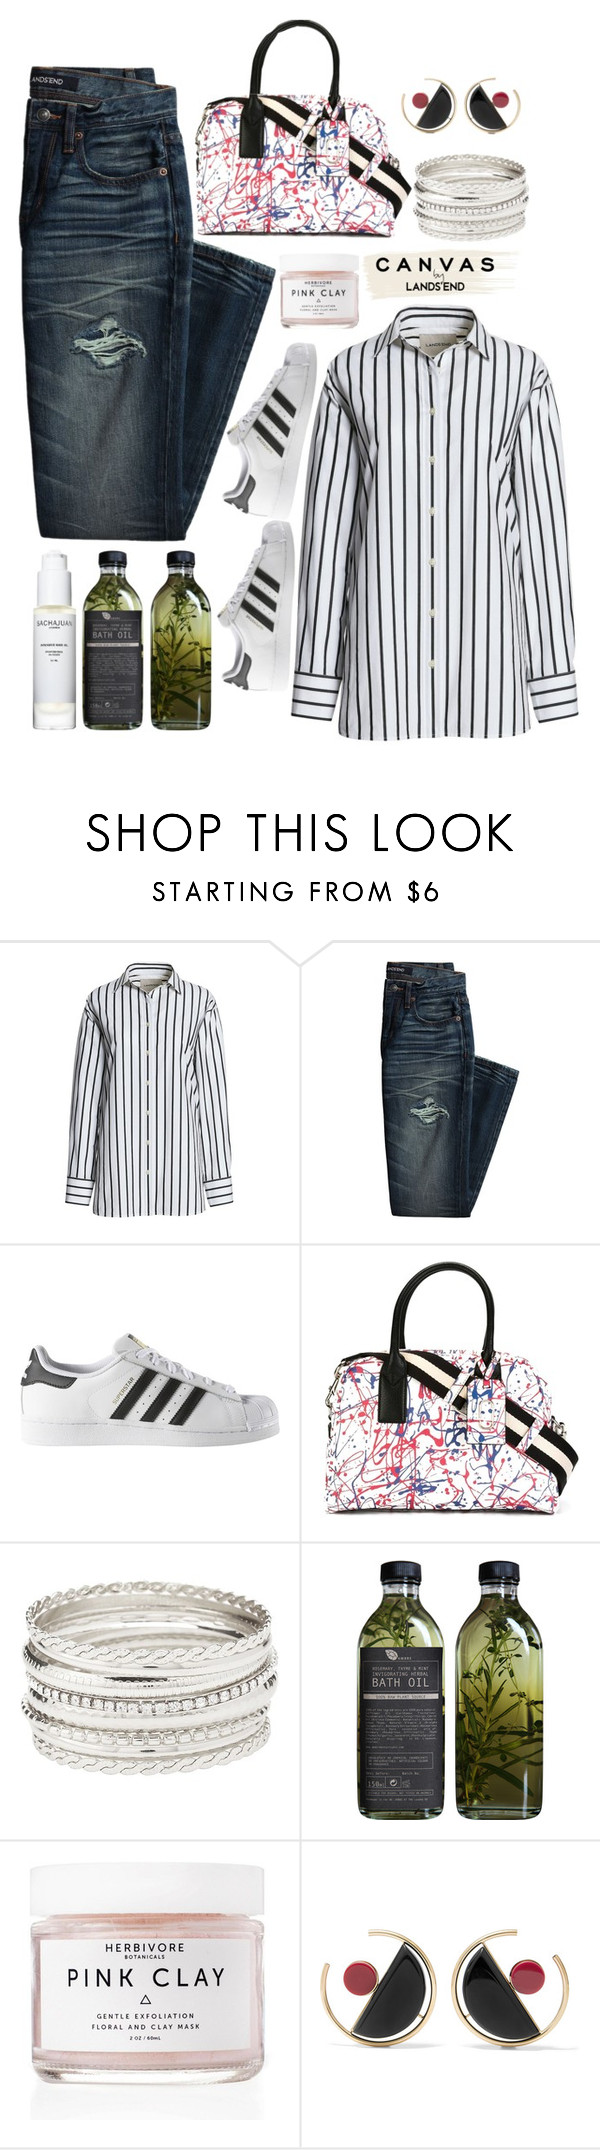 """""""Paint Your Look With Canvas by Lands' End: Contest Entry"""" by urbanstyle93 ❤ liked on Polyvore featuring Canvas by Lands' End, adidas, Marc Jacobs, Charlotte Russe, AMBRE, Herbivore, Sachajuan, Lands' End, Marni and canvas"""